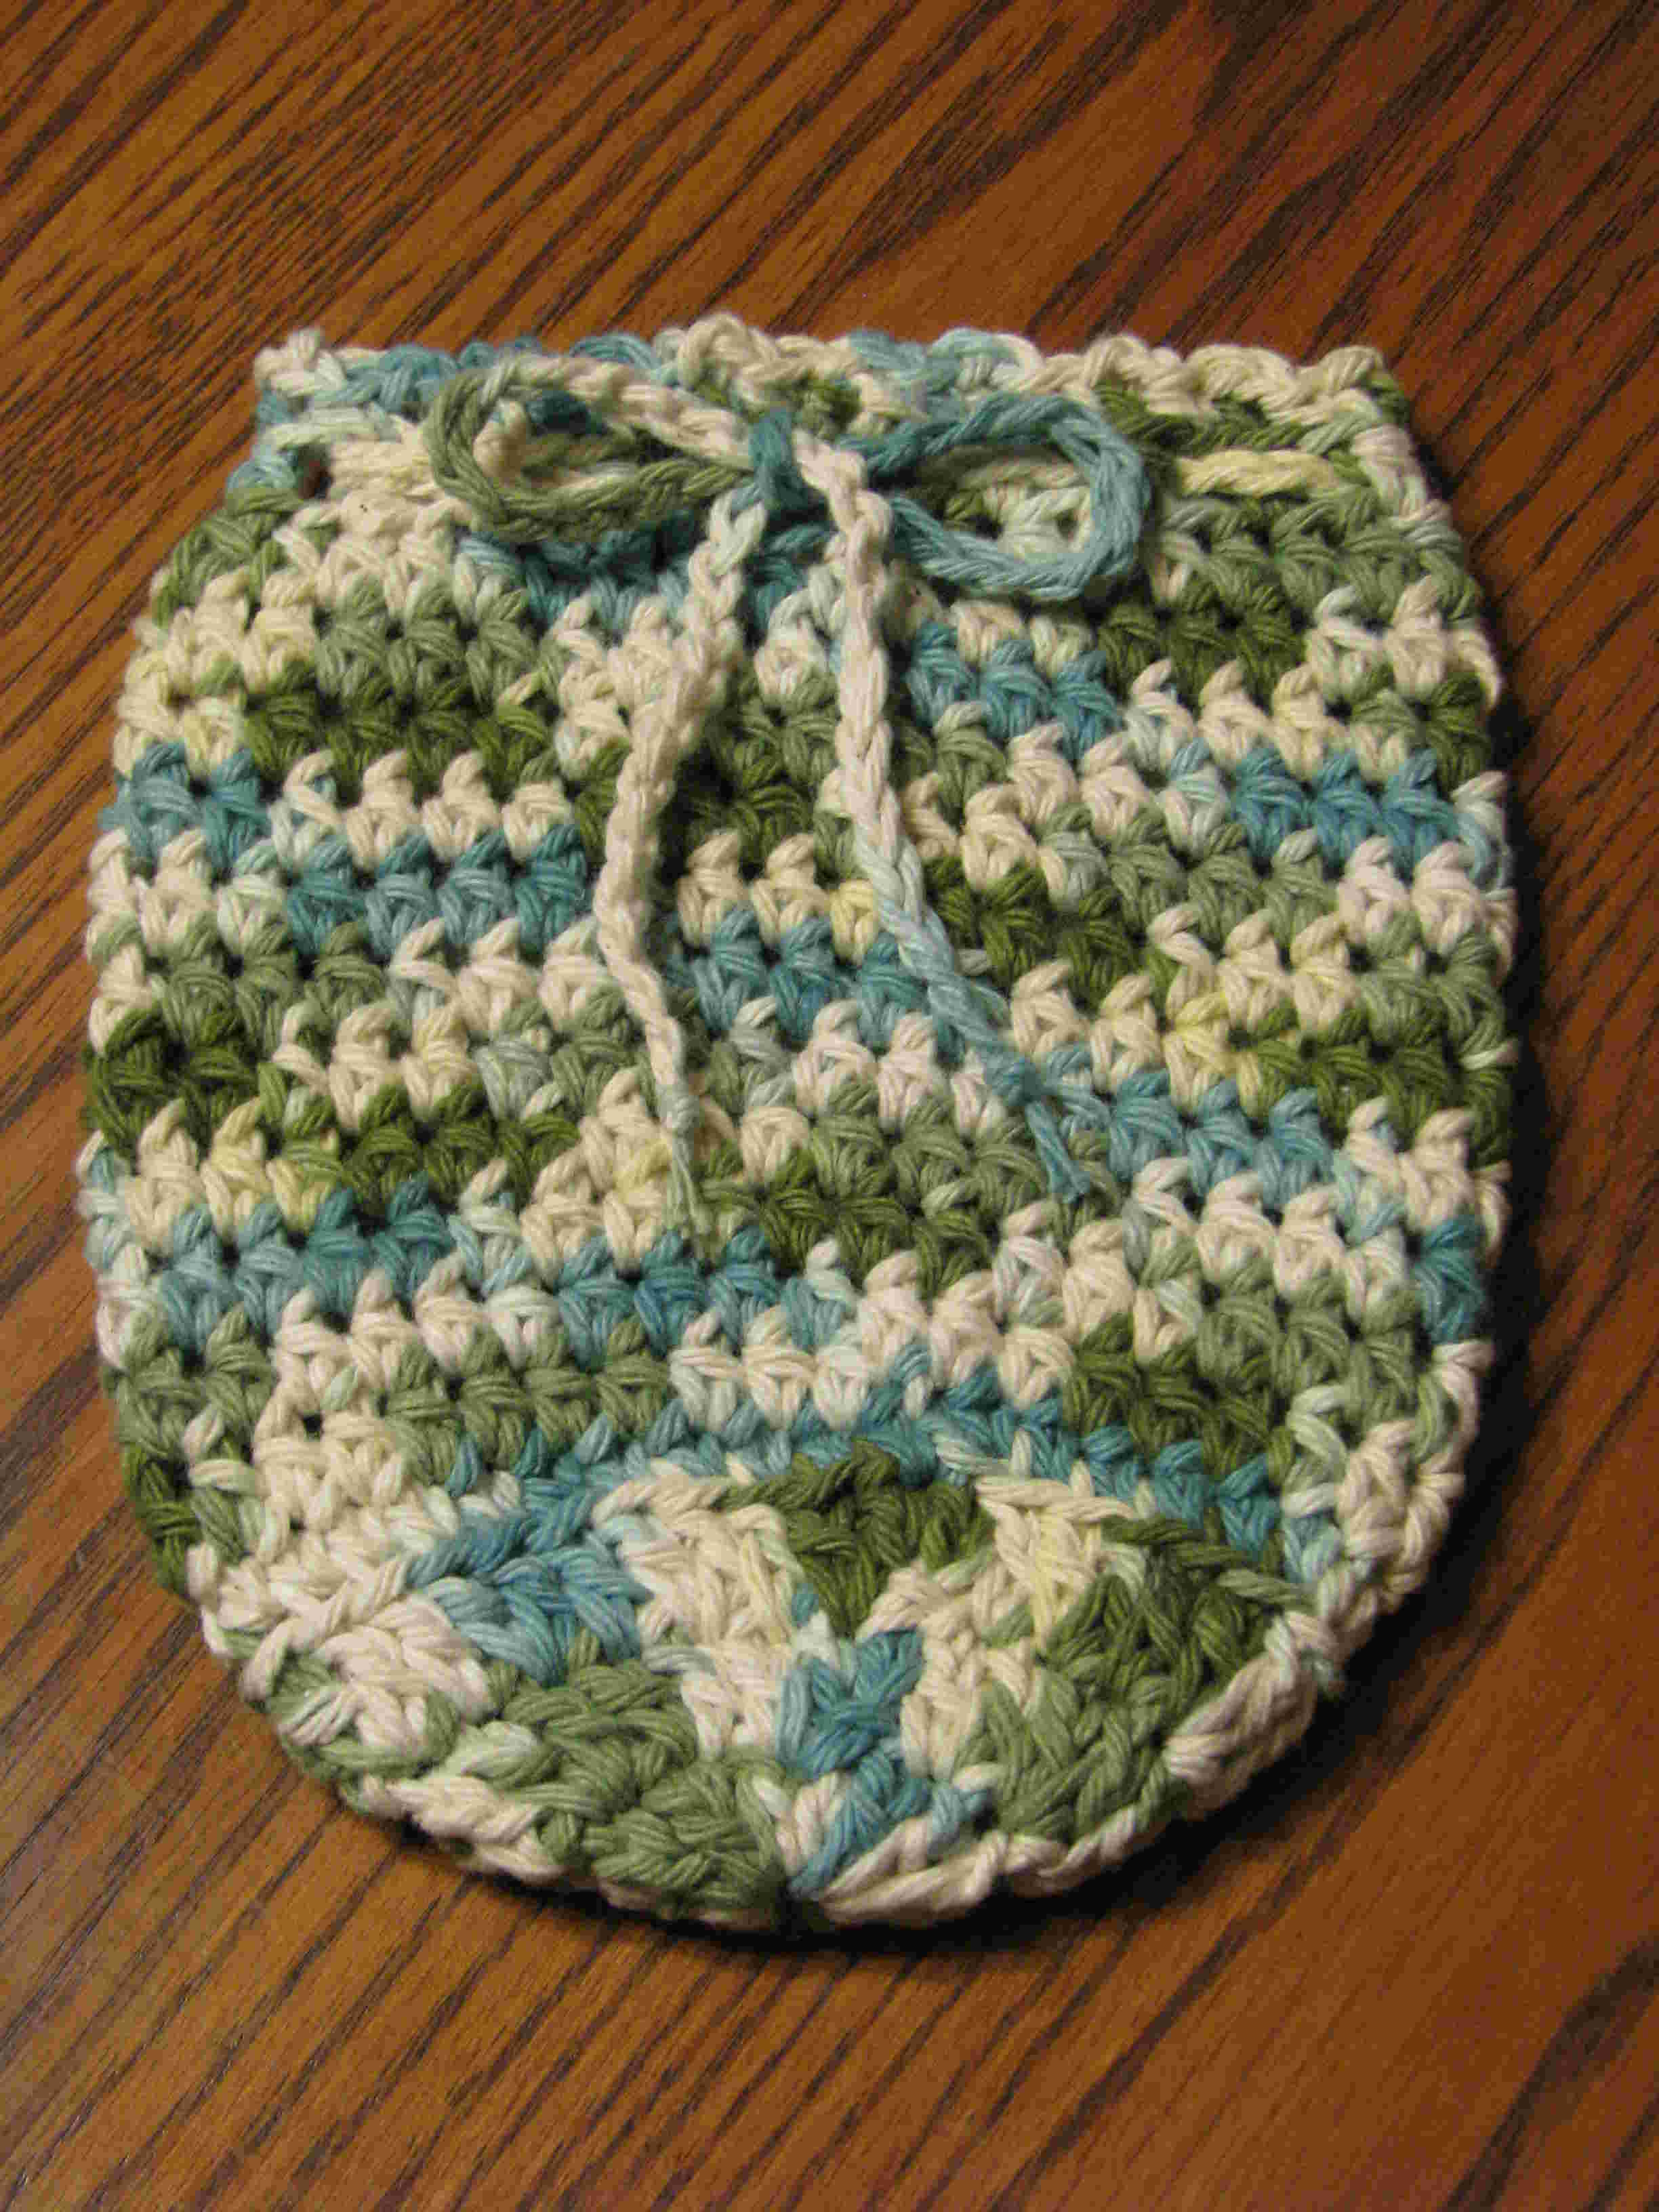 Quart Jar Cozy (Earth Tones: Green/Blue/White)